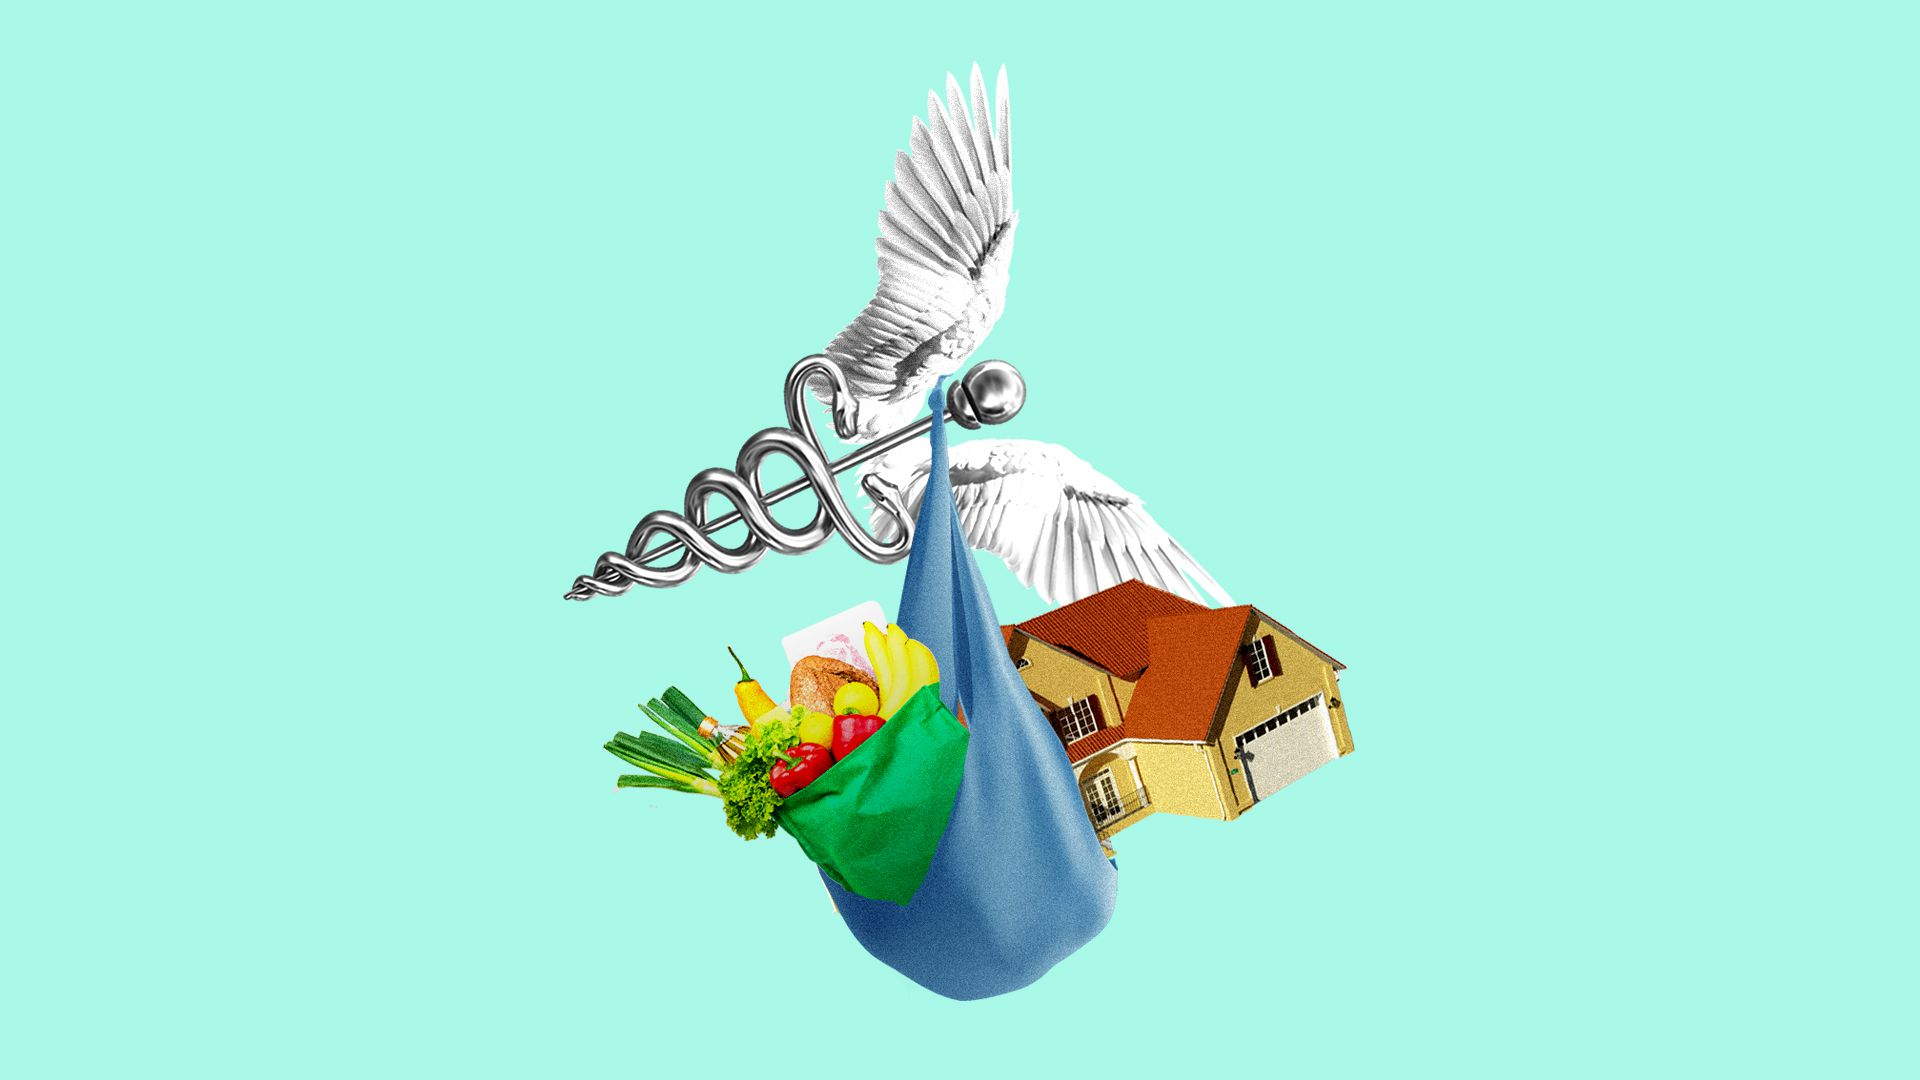 Illustration of flying caduceus carrying sack of groceries and a house